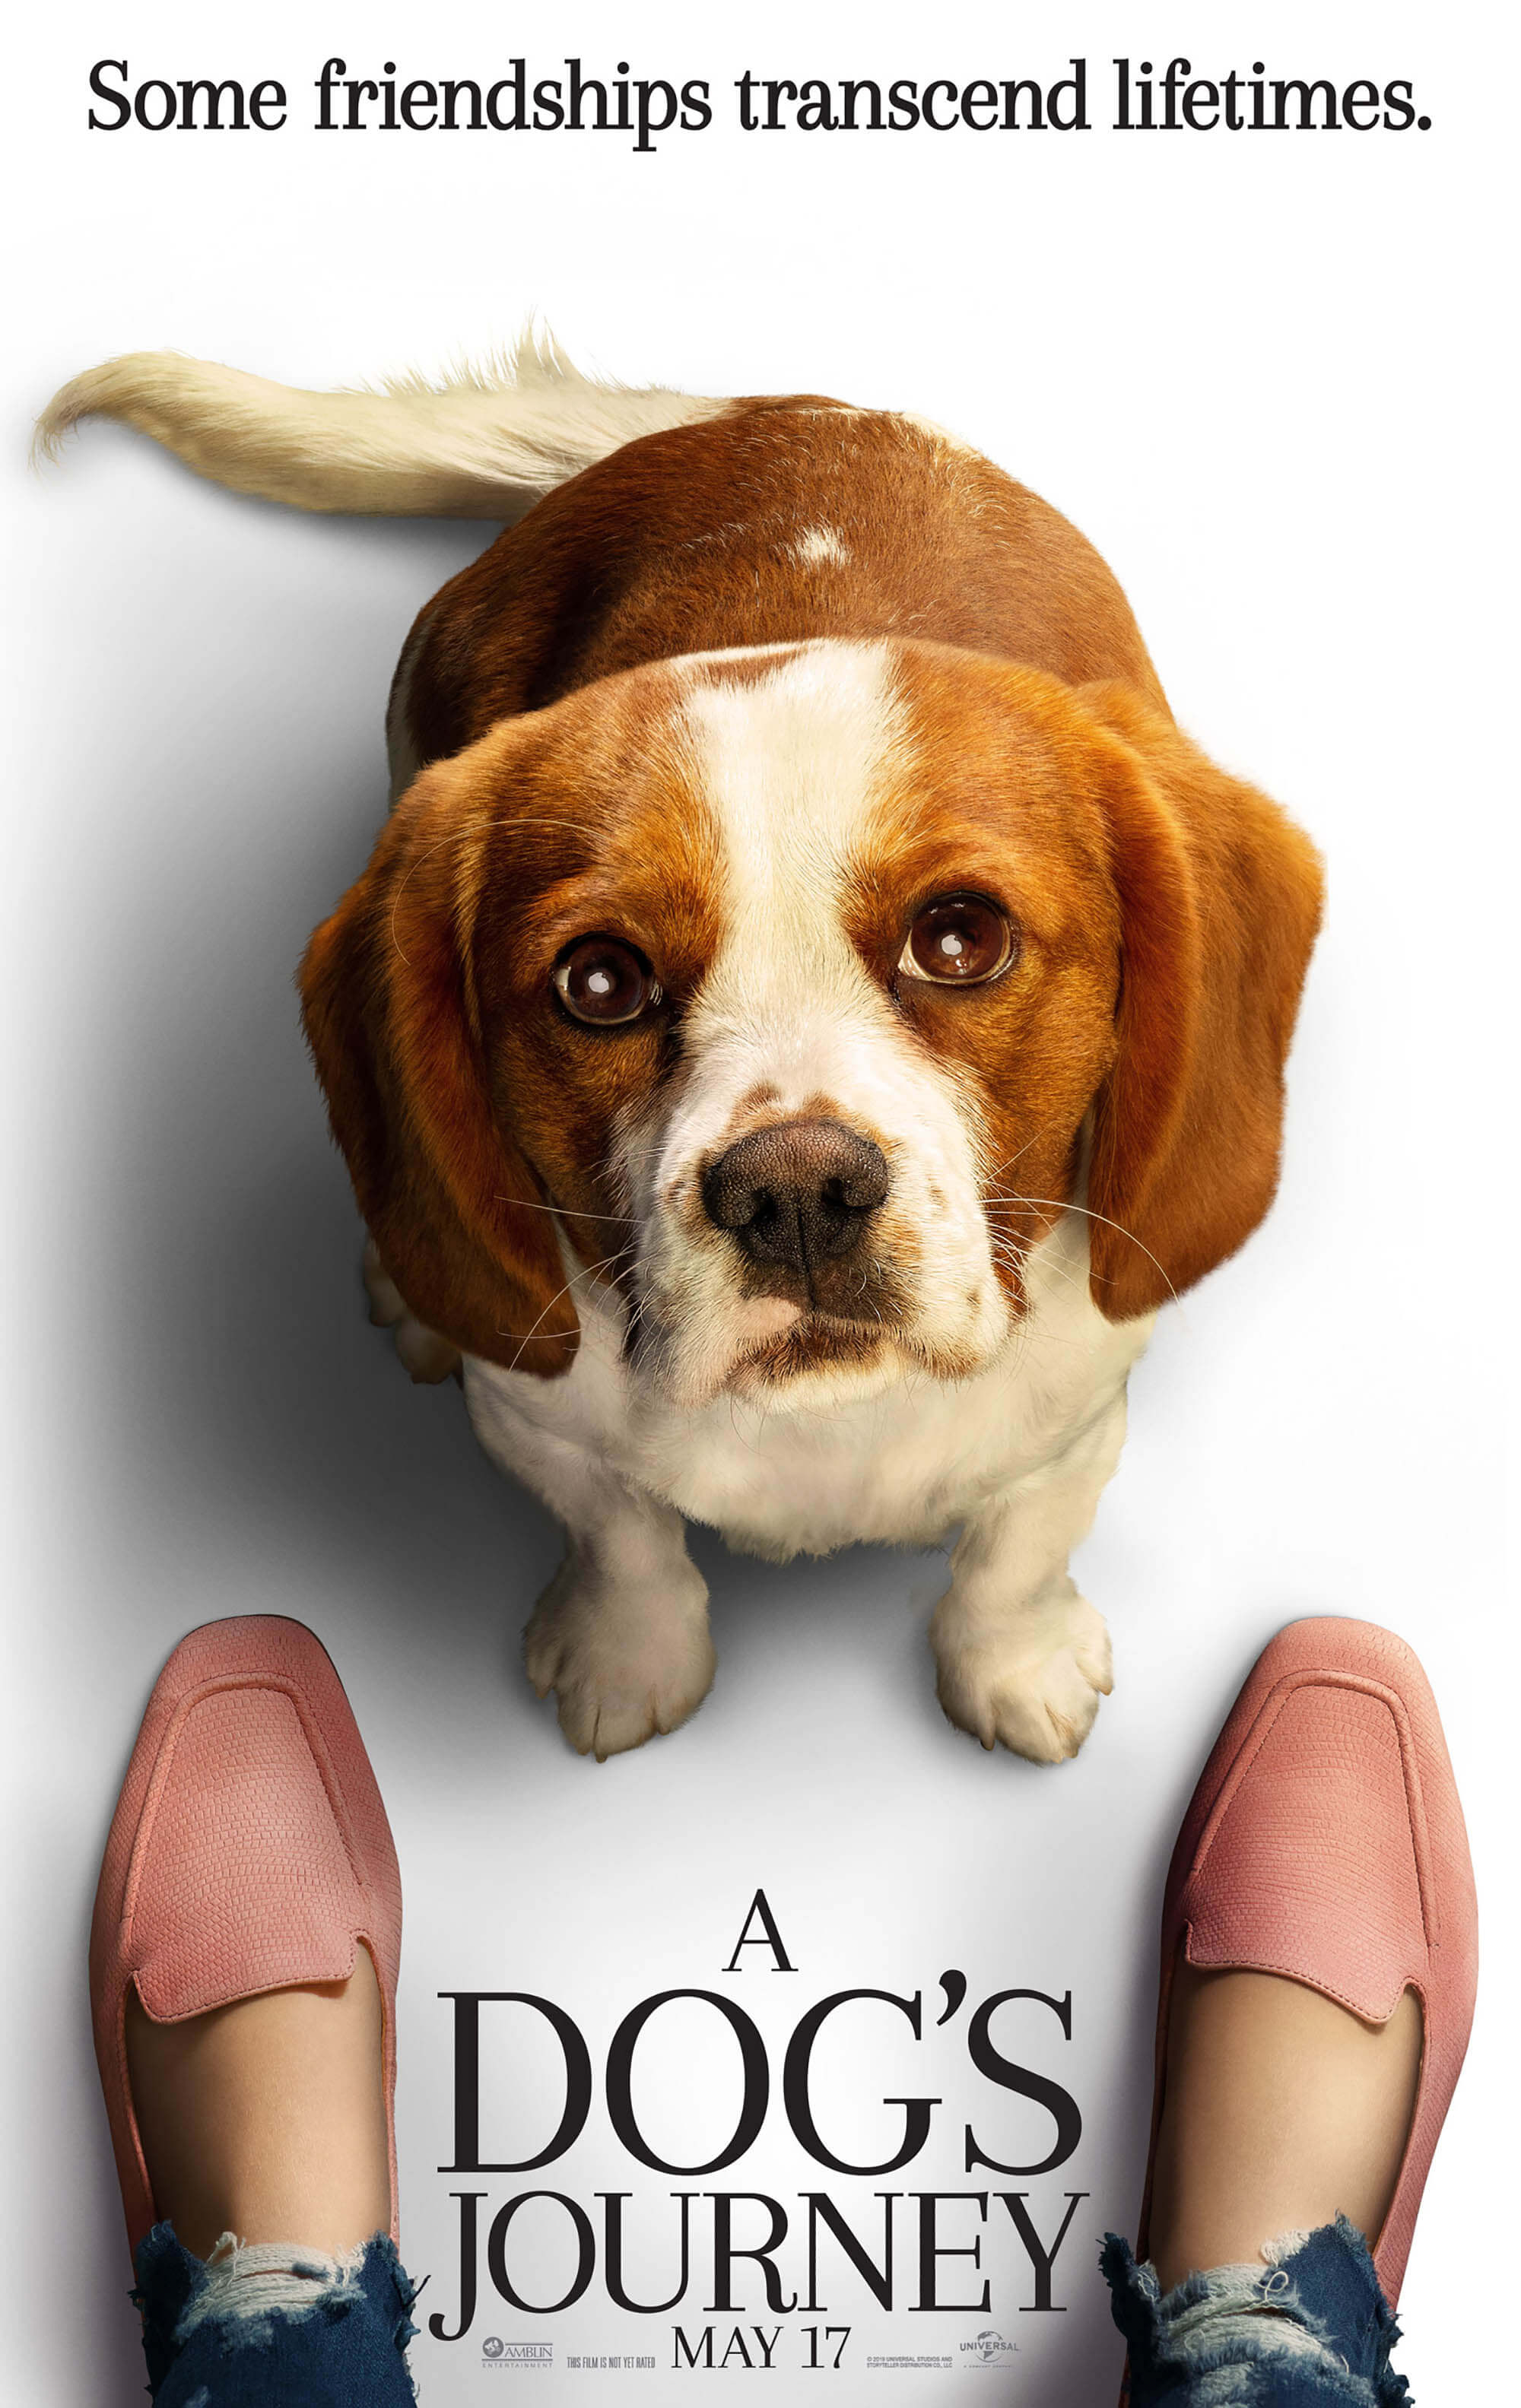 A Dogs Journey Movie Site Trailer May 17 2019